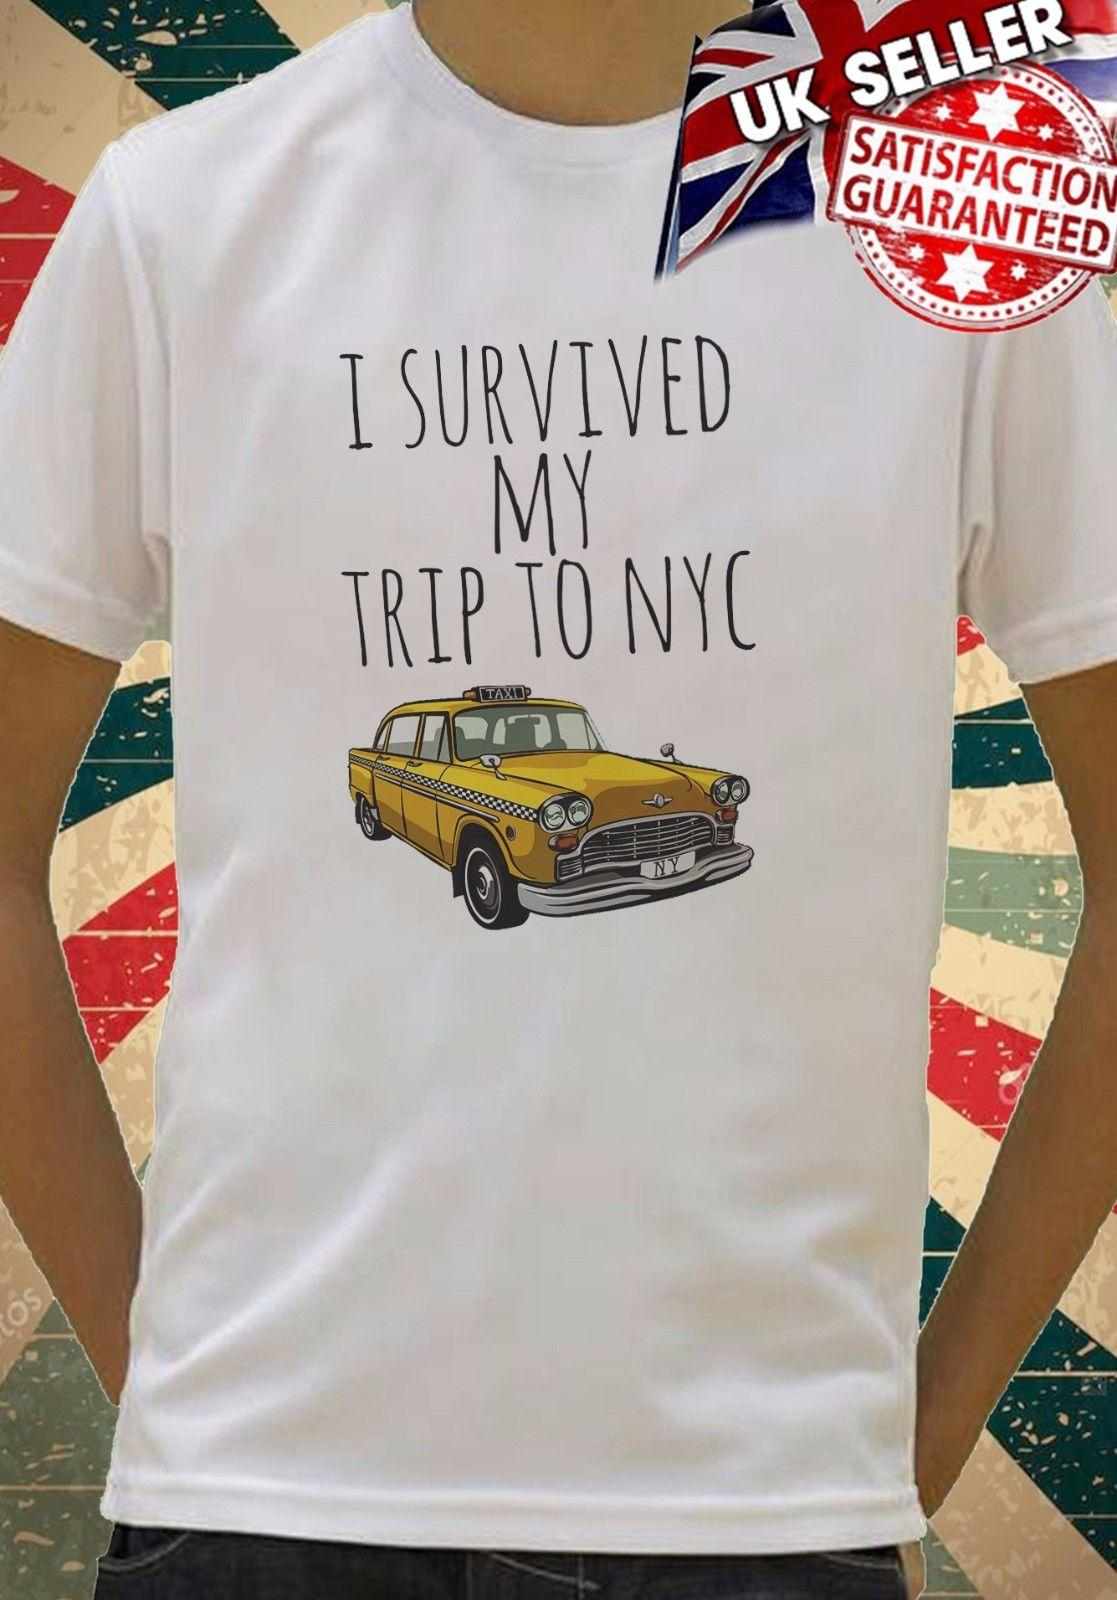 I Survived My Trip To NYC New York Cool Kids Boy Girls Unisex Top T Shirt  690 T Shirt With A T Shirt On It Best Deal On T Shirts From Mildeast ac18c26cafc